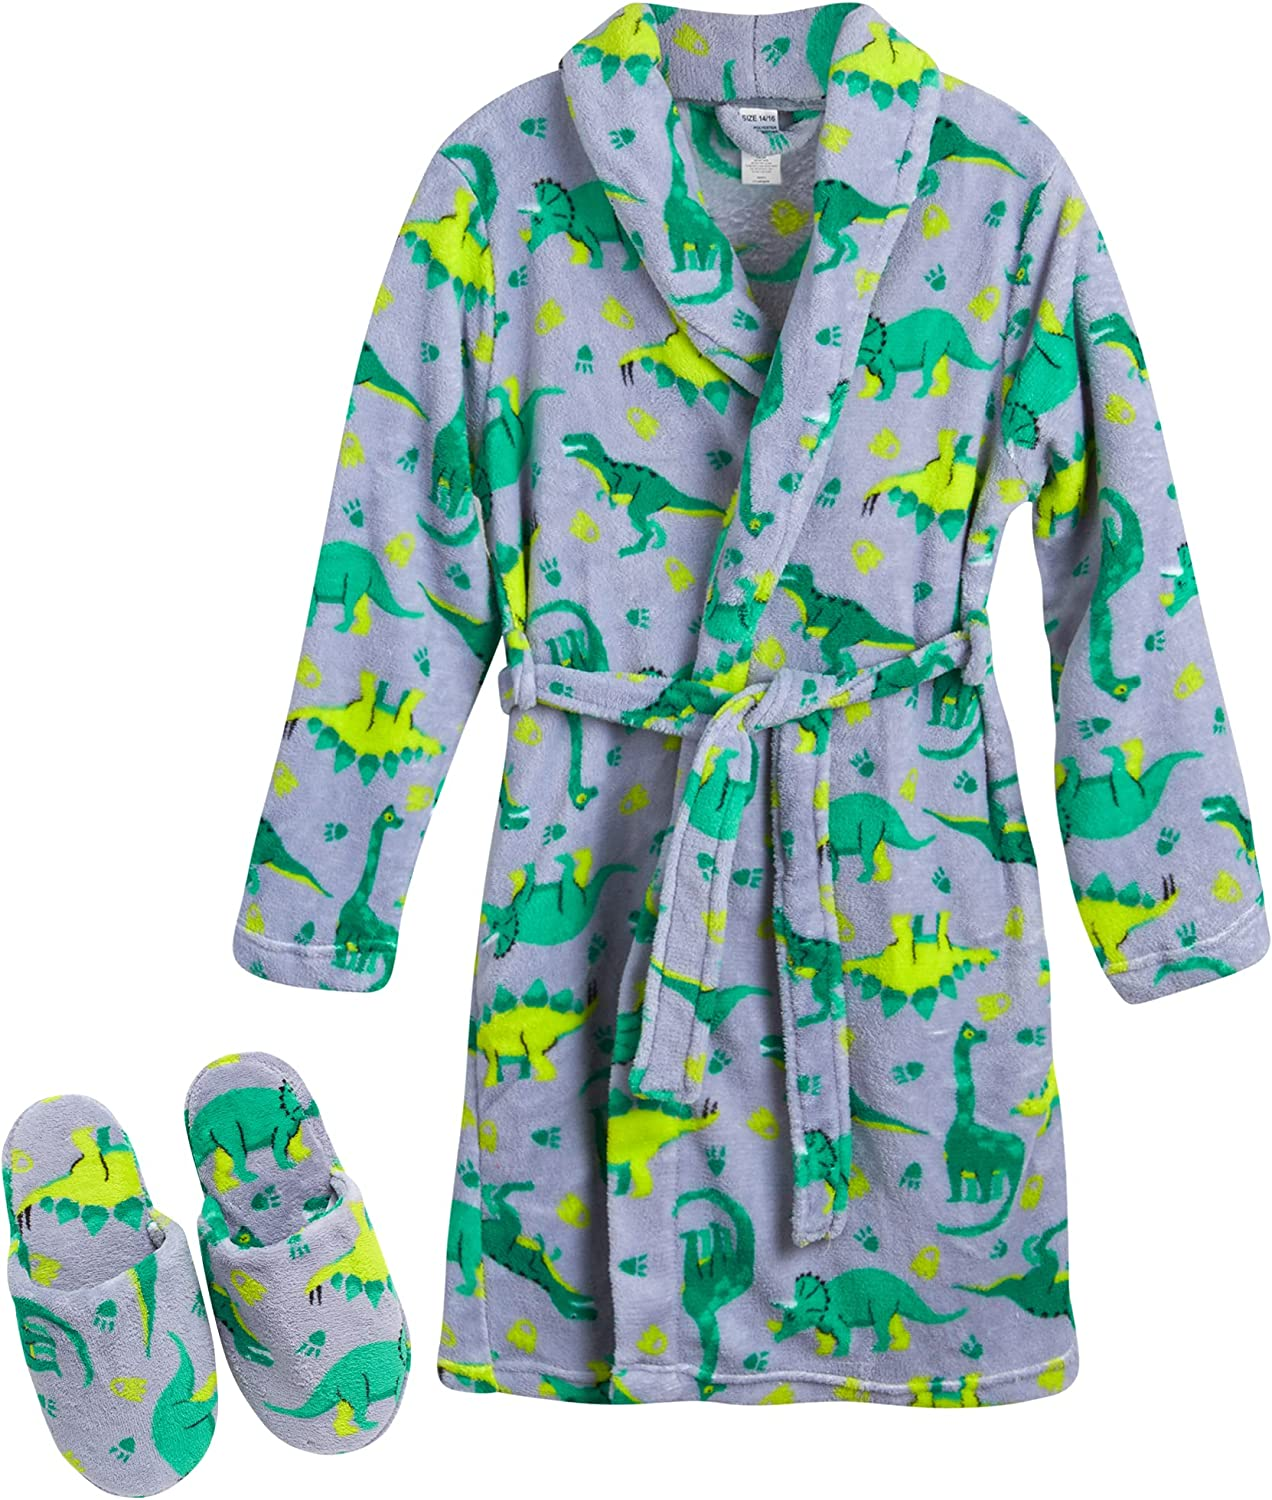 Too Cool 2 Sleep Big Boys' Green Camo Robe with Slippers , Size 5/6, Mon Green Dinos